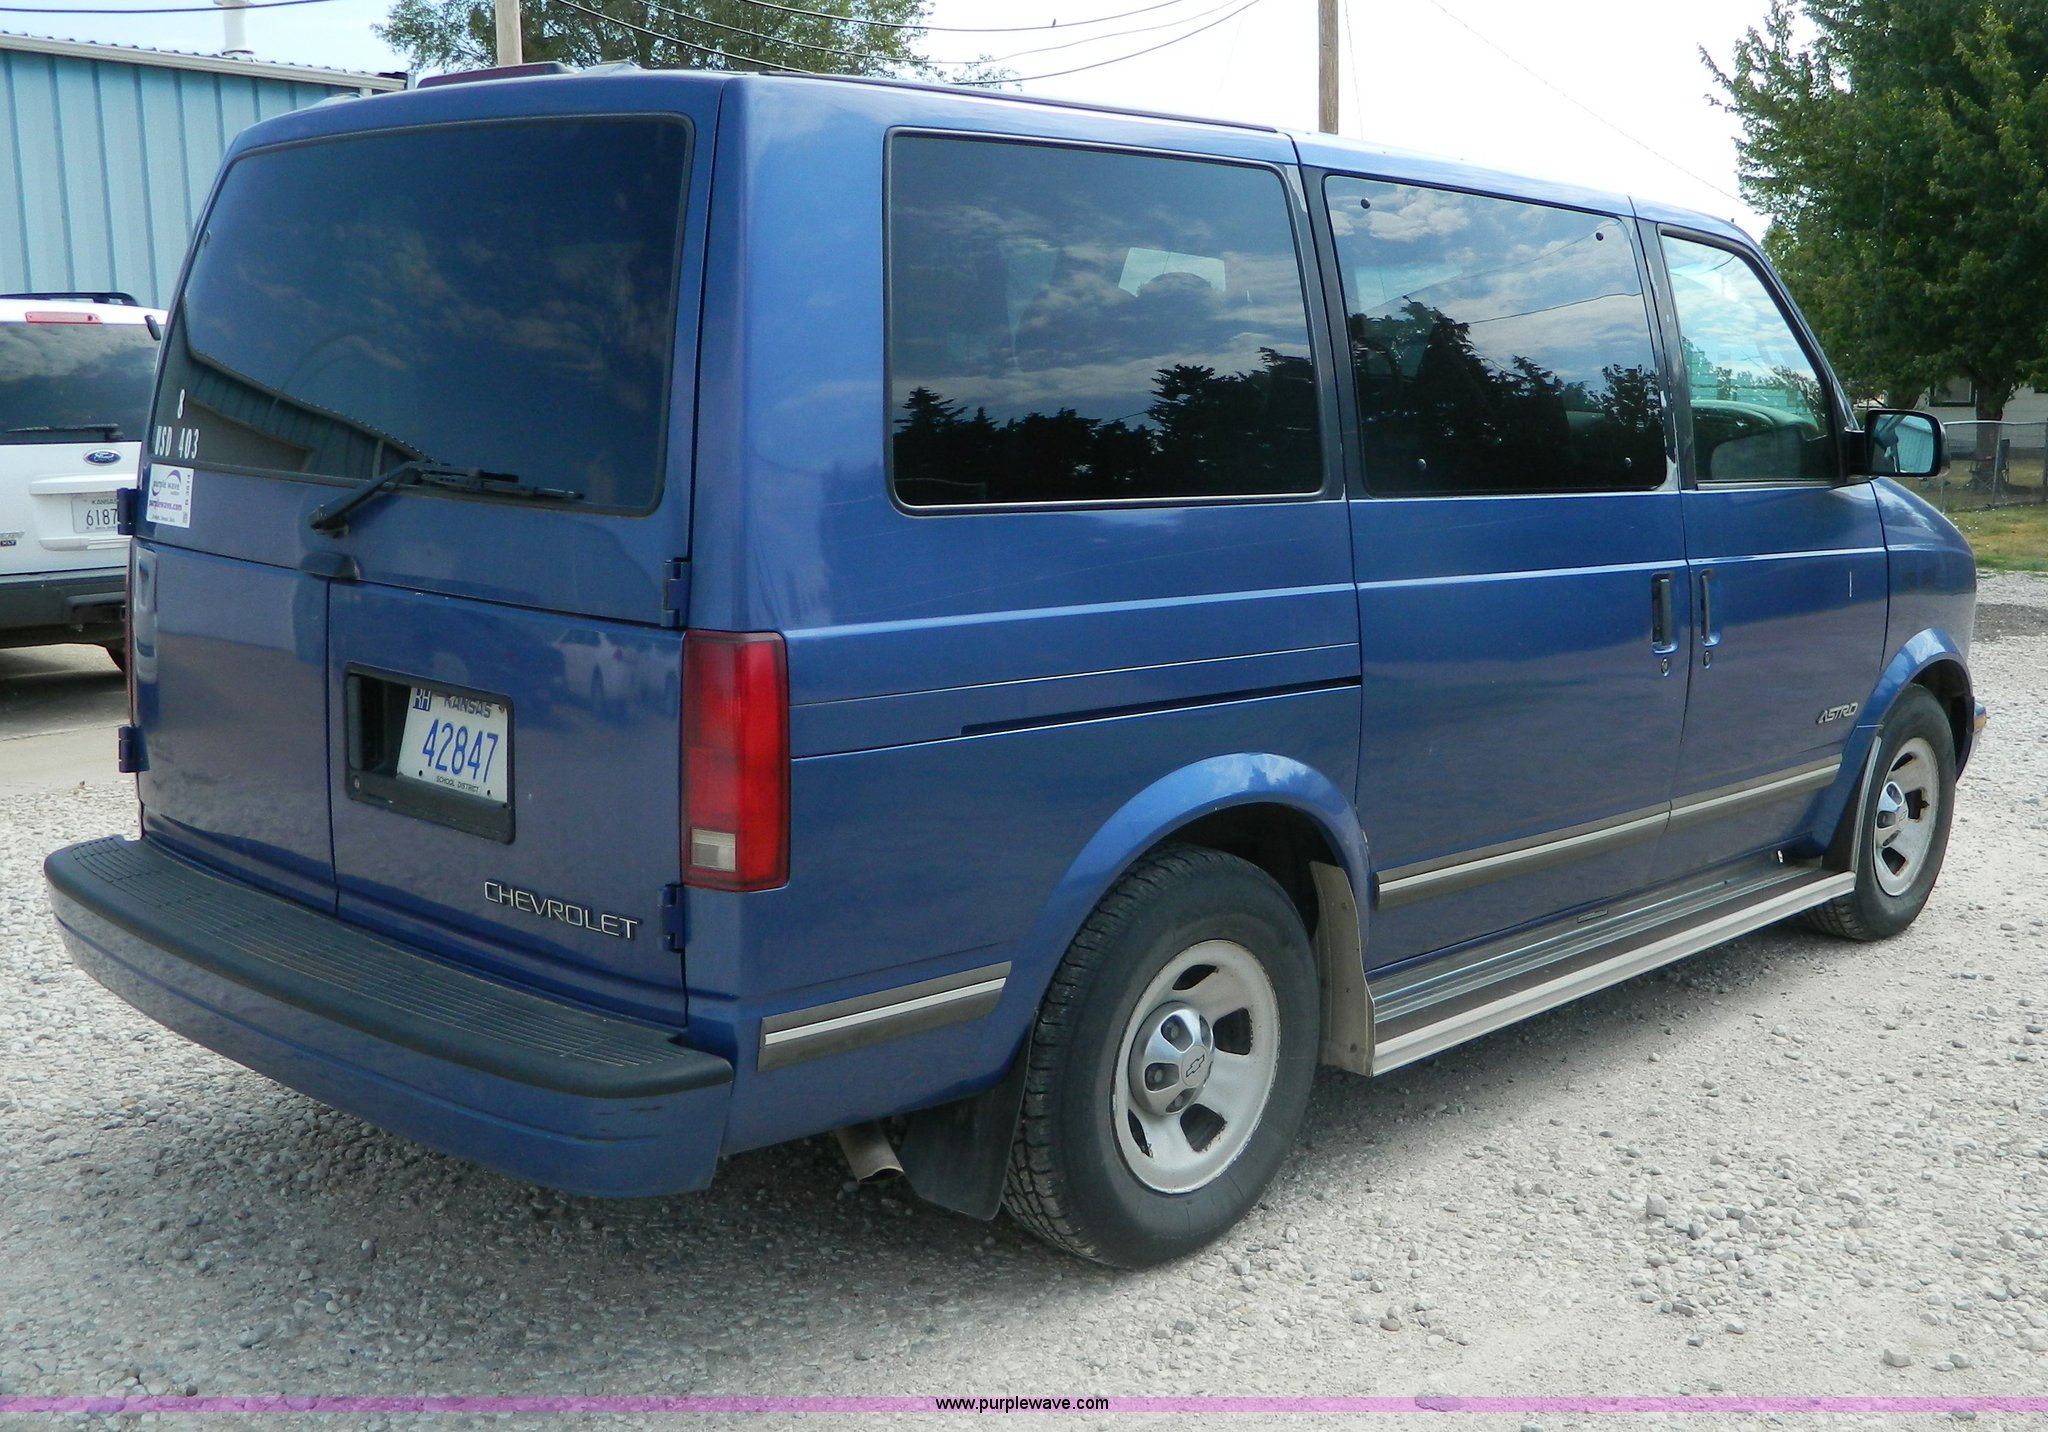 1996 Chevrolet Astro Van Item B3814 Sold Tuesday August Chevy 4 3 Liter Engine For Full Size In New Window